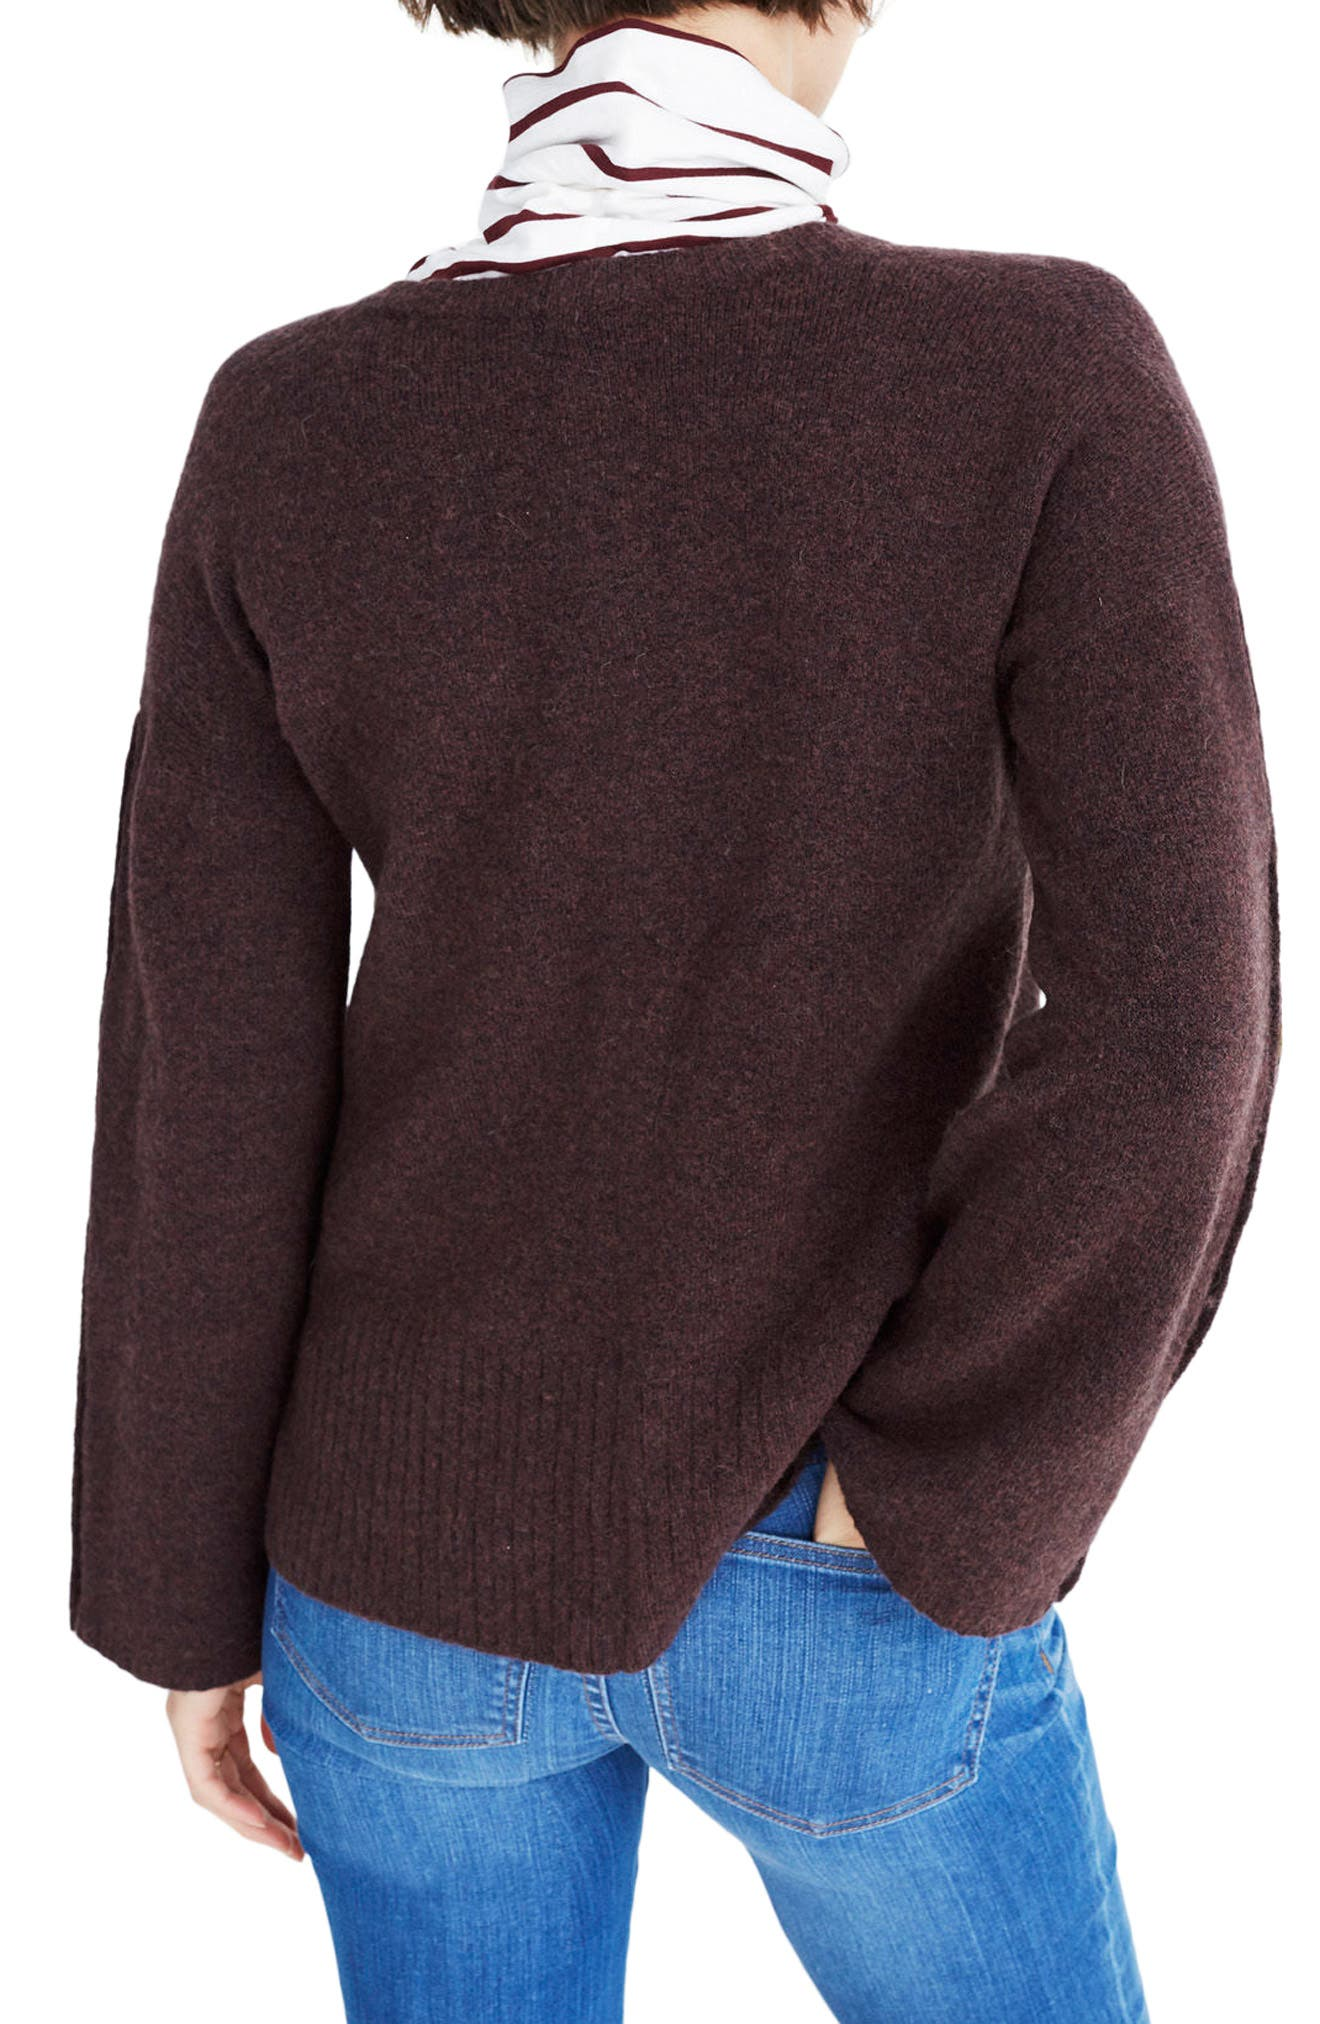 Button Sleeve Pullover Sweater,                             Alternate thumbnail 2, color,                             Heather Coffee